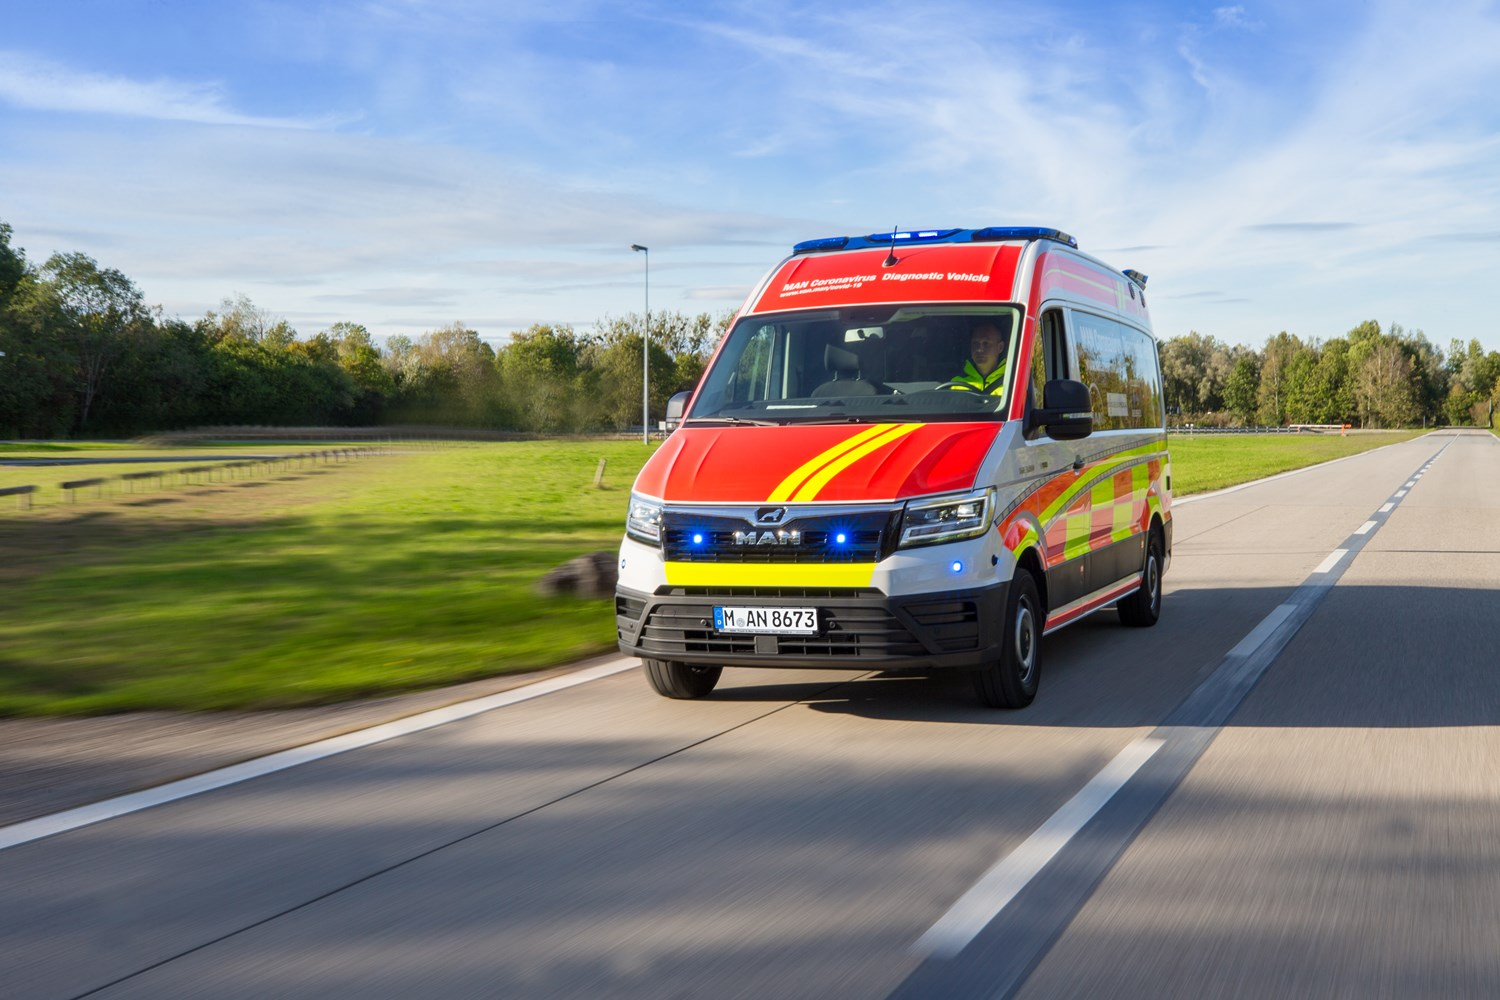 Flexible use: With the MAN Coronavirus diagnostic vehicle, test capacities can be quickly relocated as required and deployed exactly where they are needed.